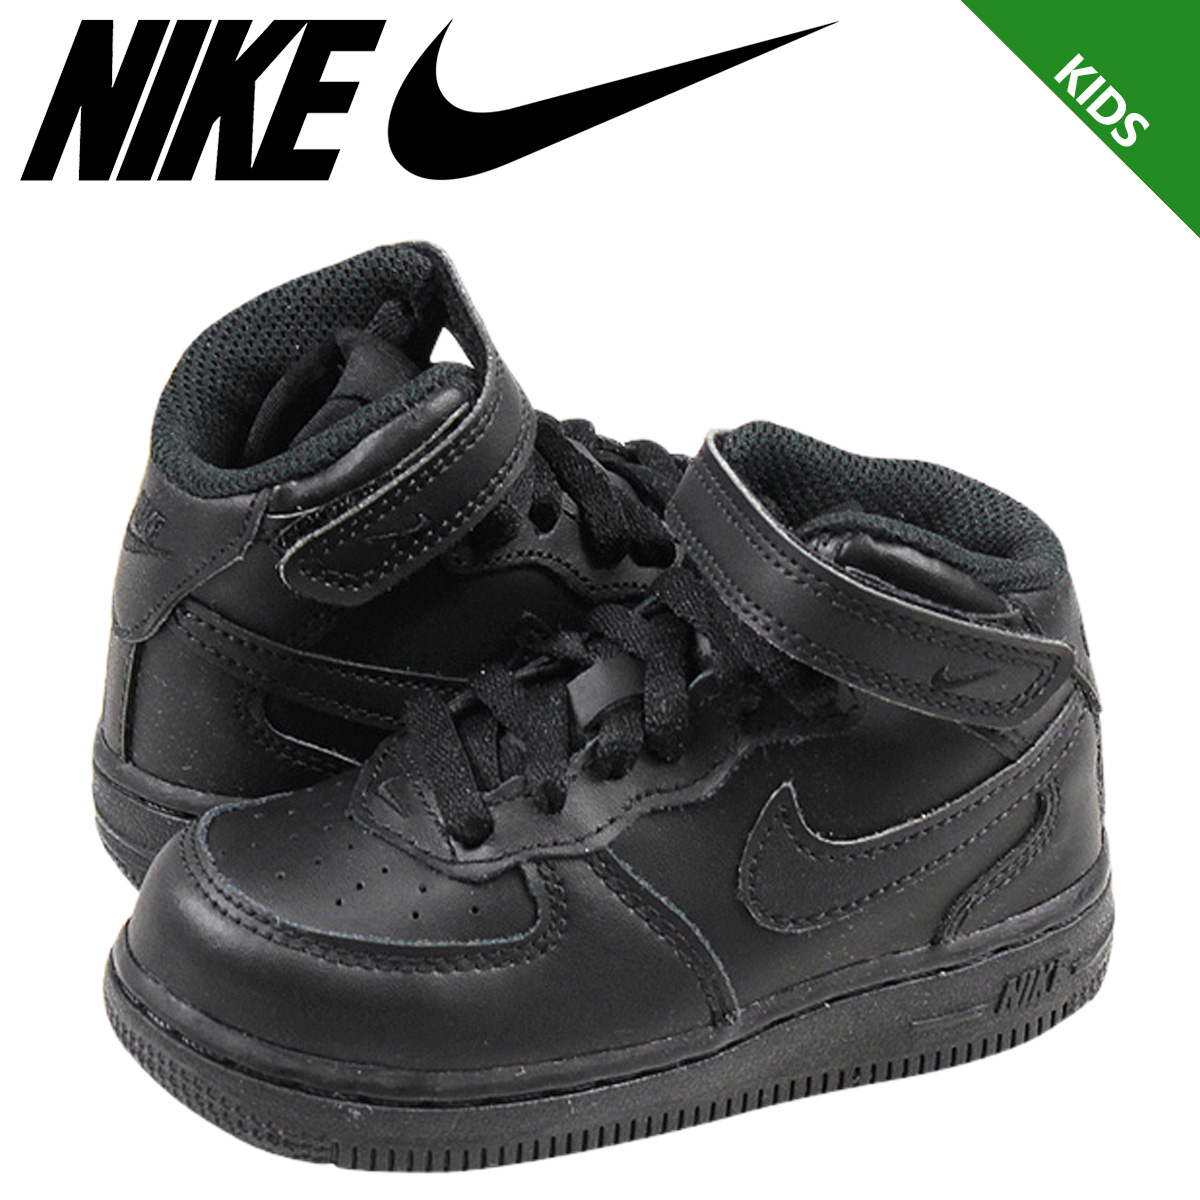 Air Force 1 Nike Prix Enfant Philippines